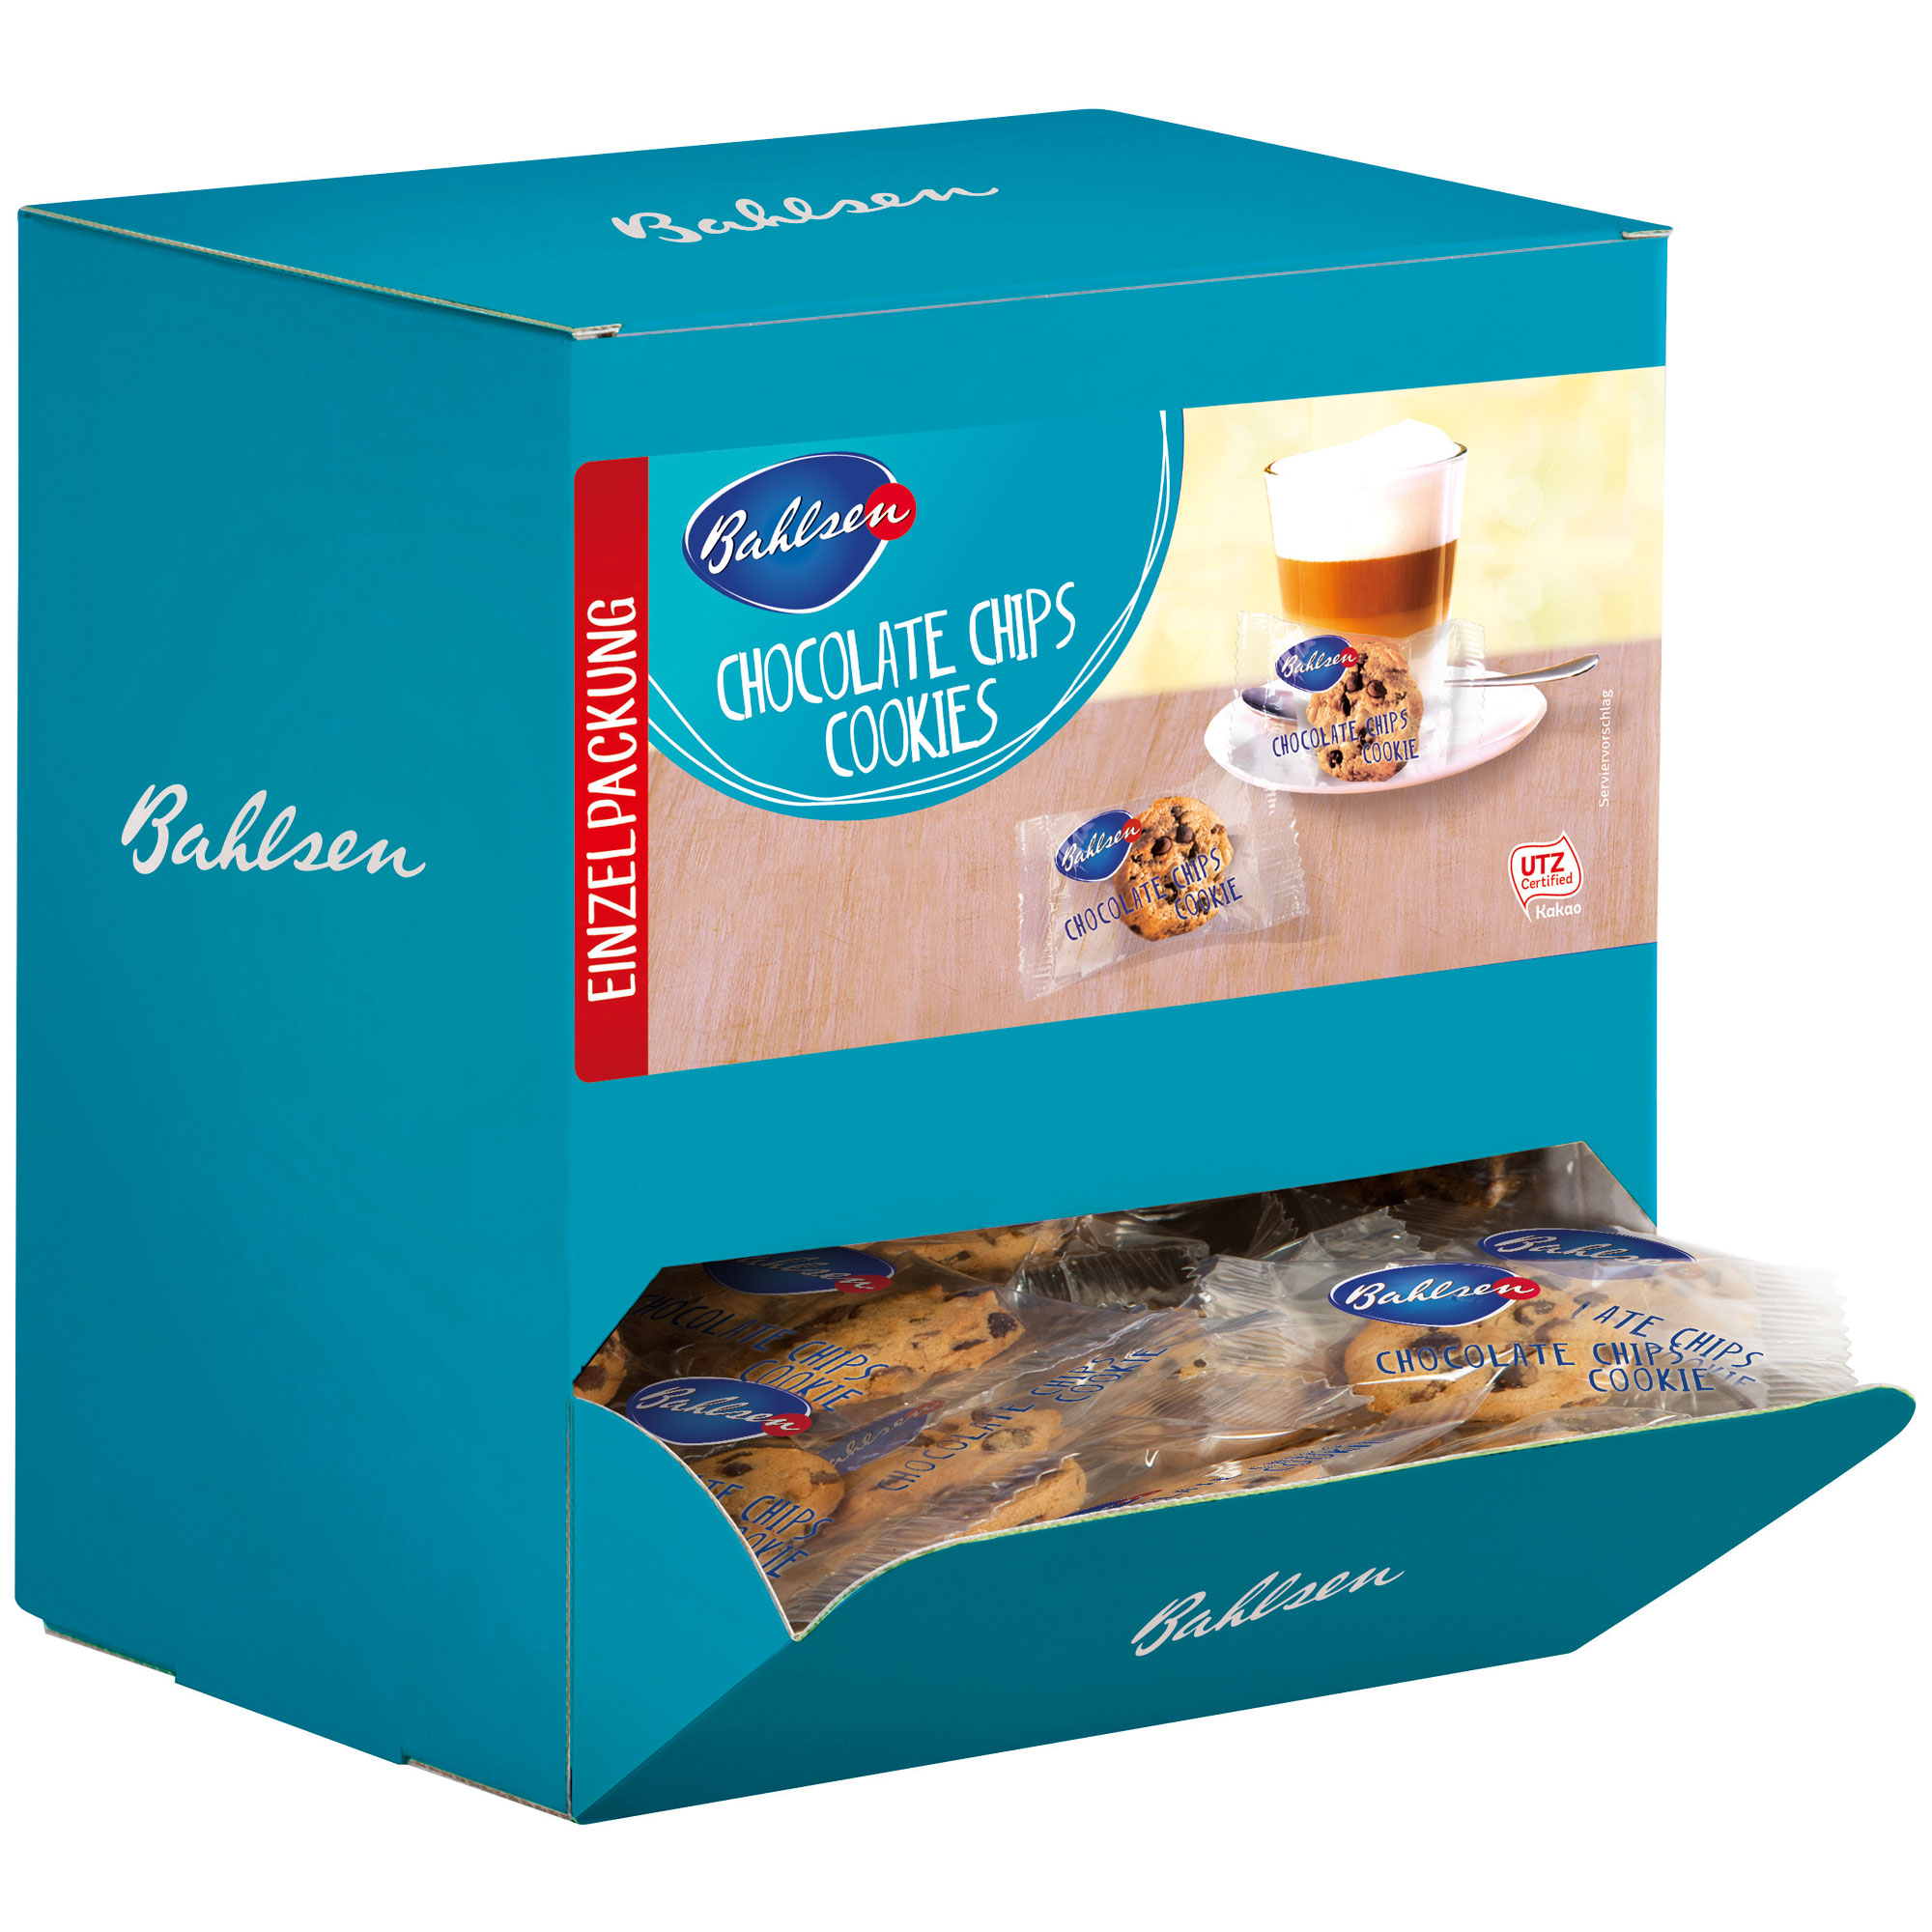 Bahlsen Mini Kuchen Bahlsen Chocolate Chips Cookies 200er